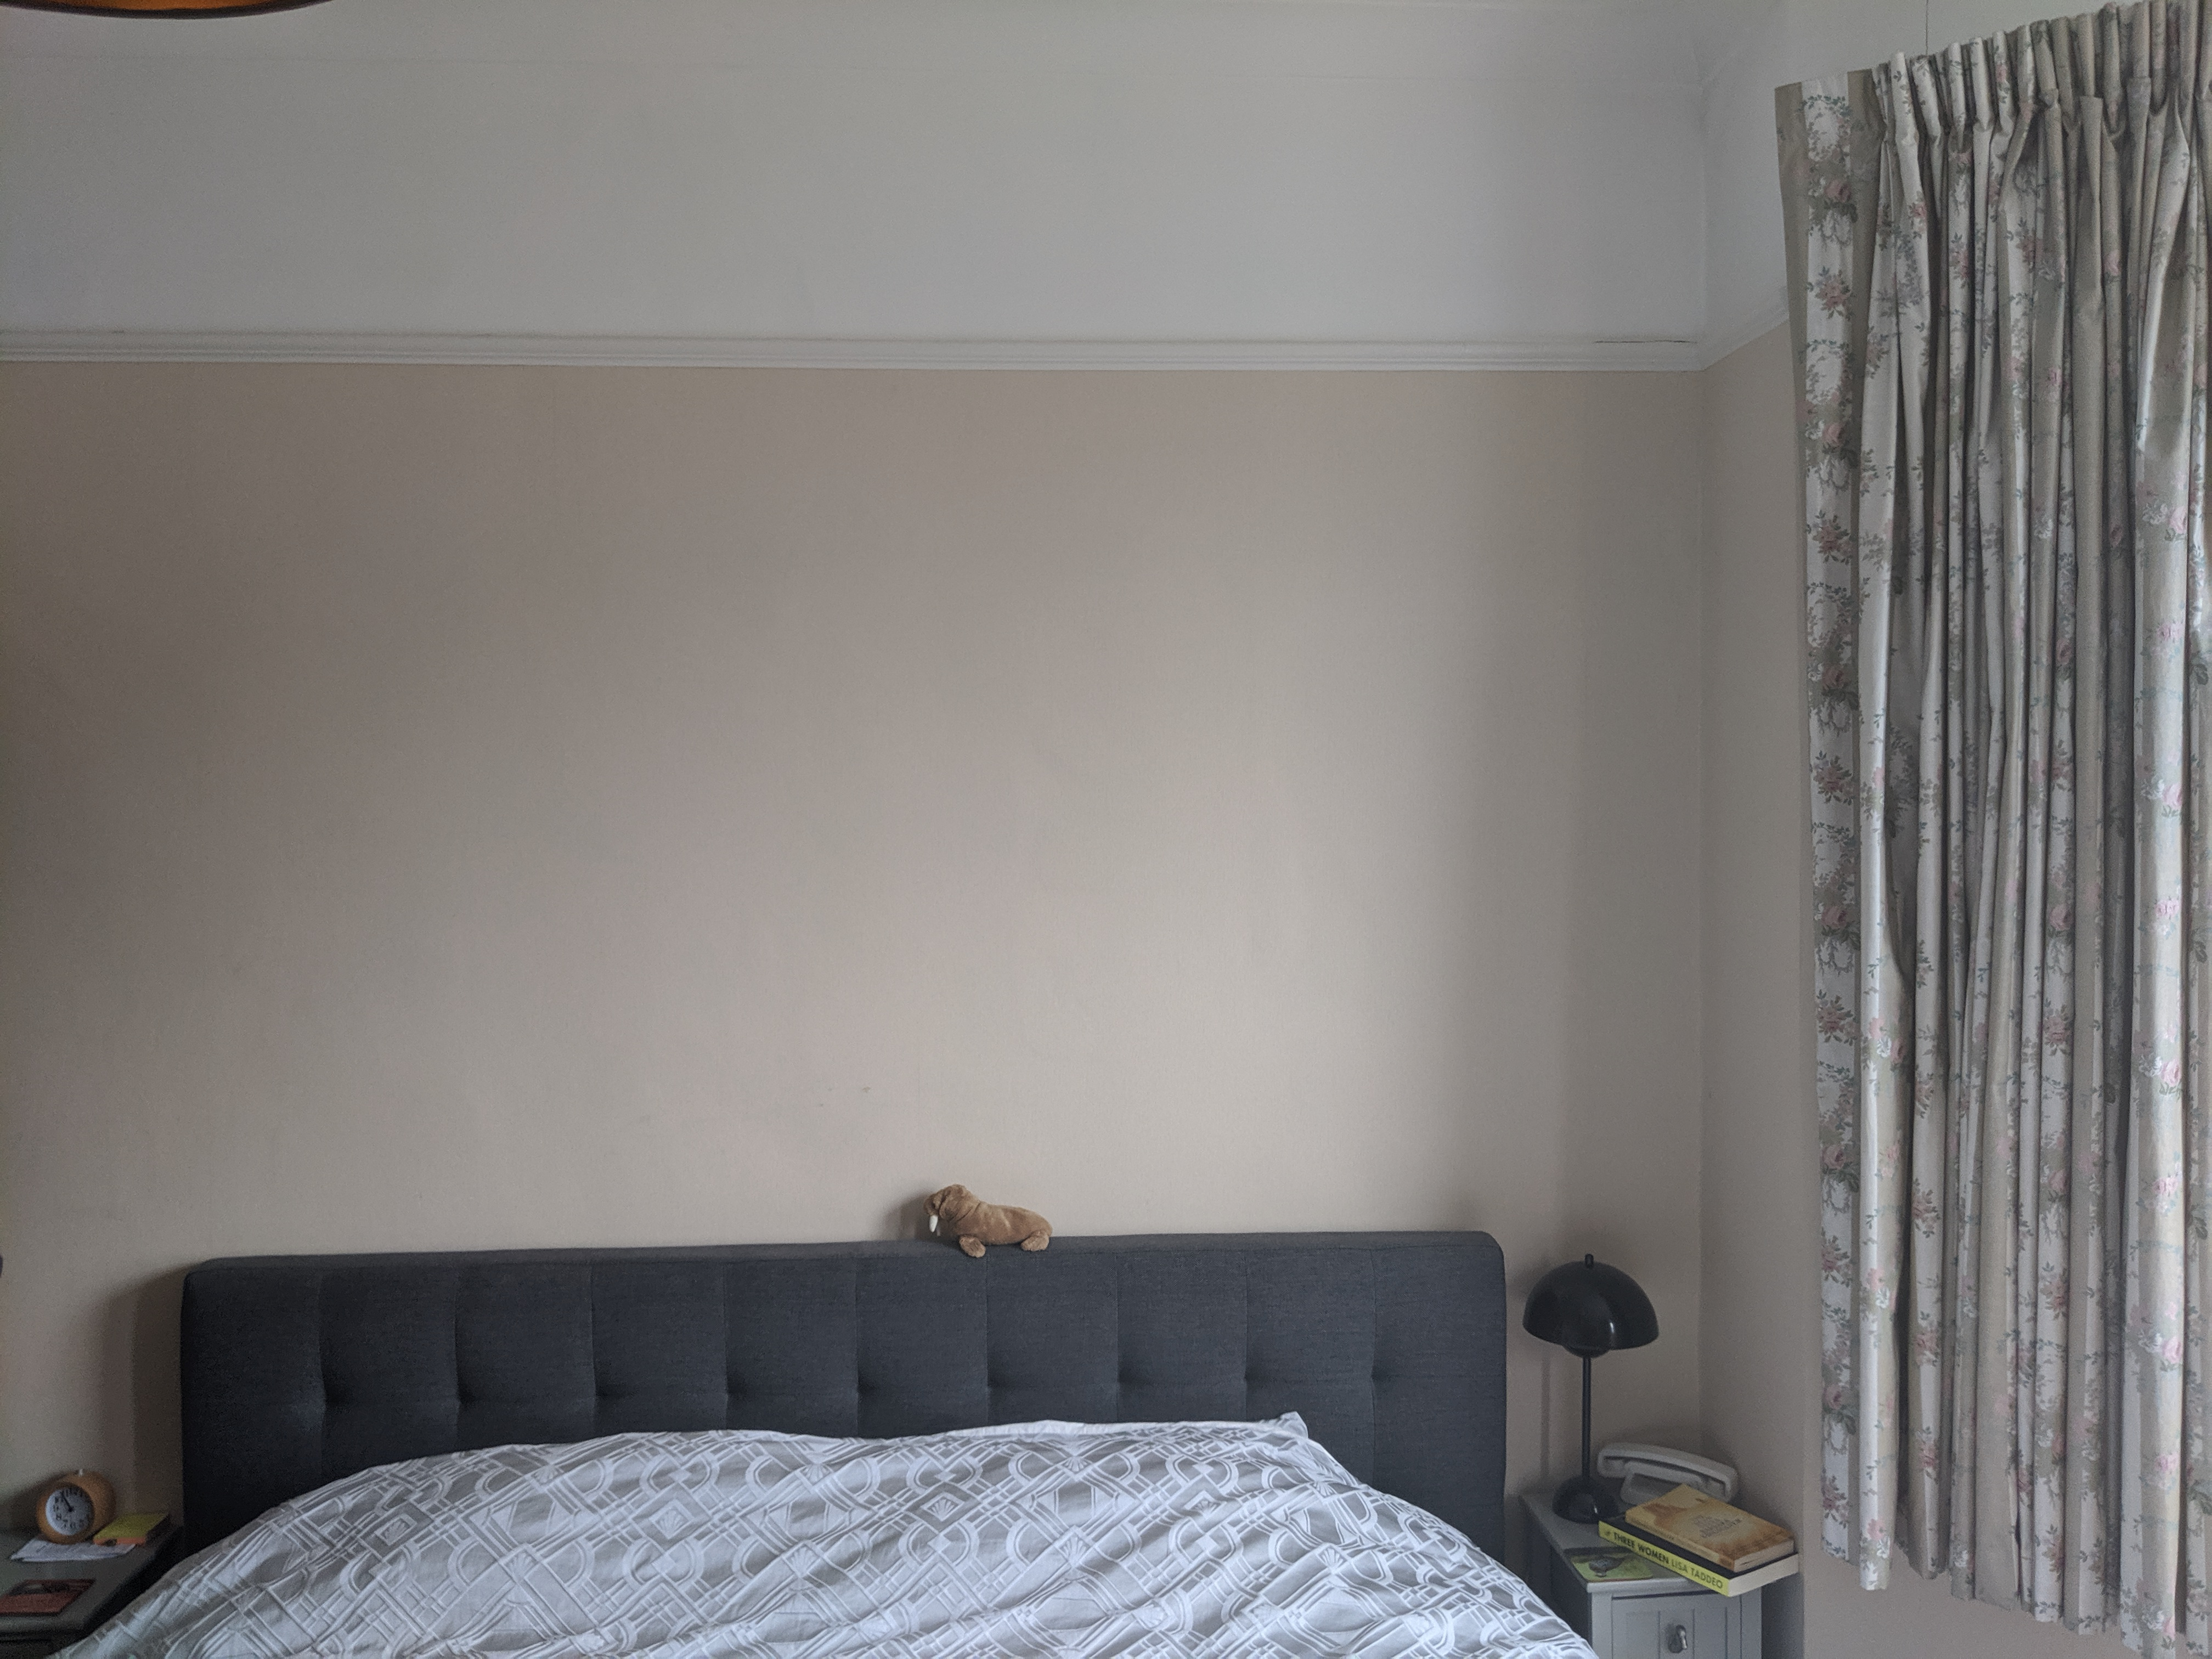 A photo of the room before, showing the bed  against a plain wall.